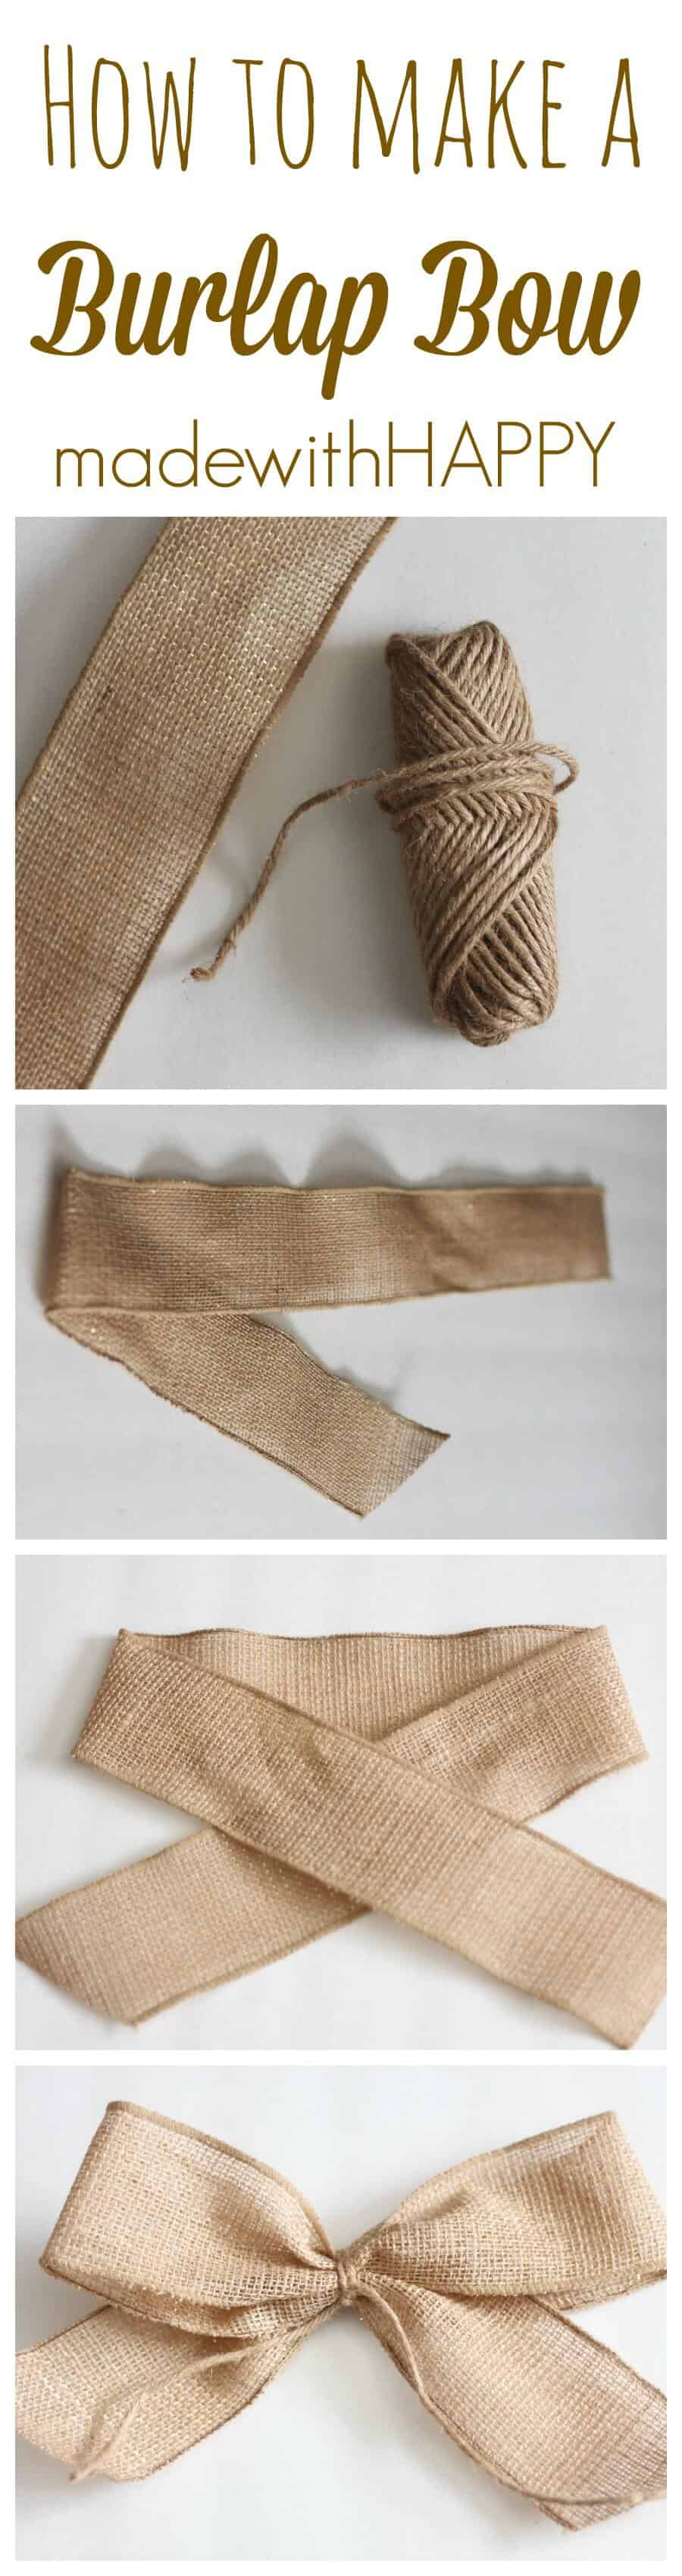 How to make a burlap bow. How to tie a bow with burlap. Simple burlap ribbon to create a burlap bow